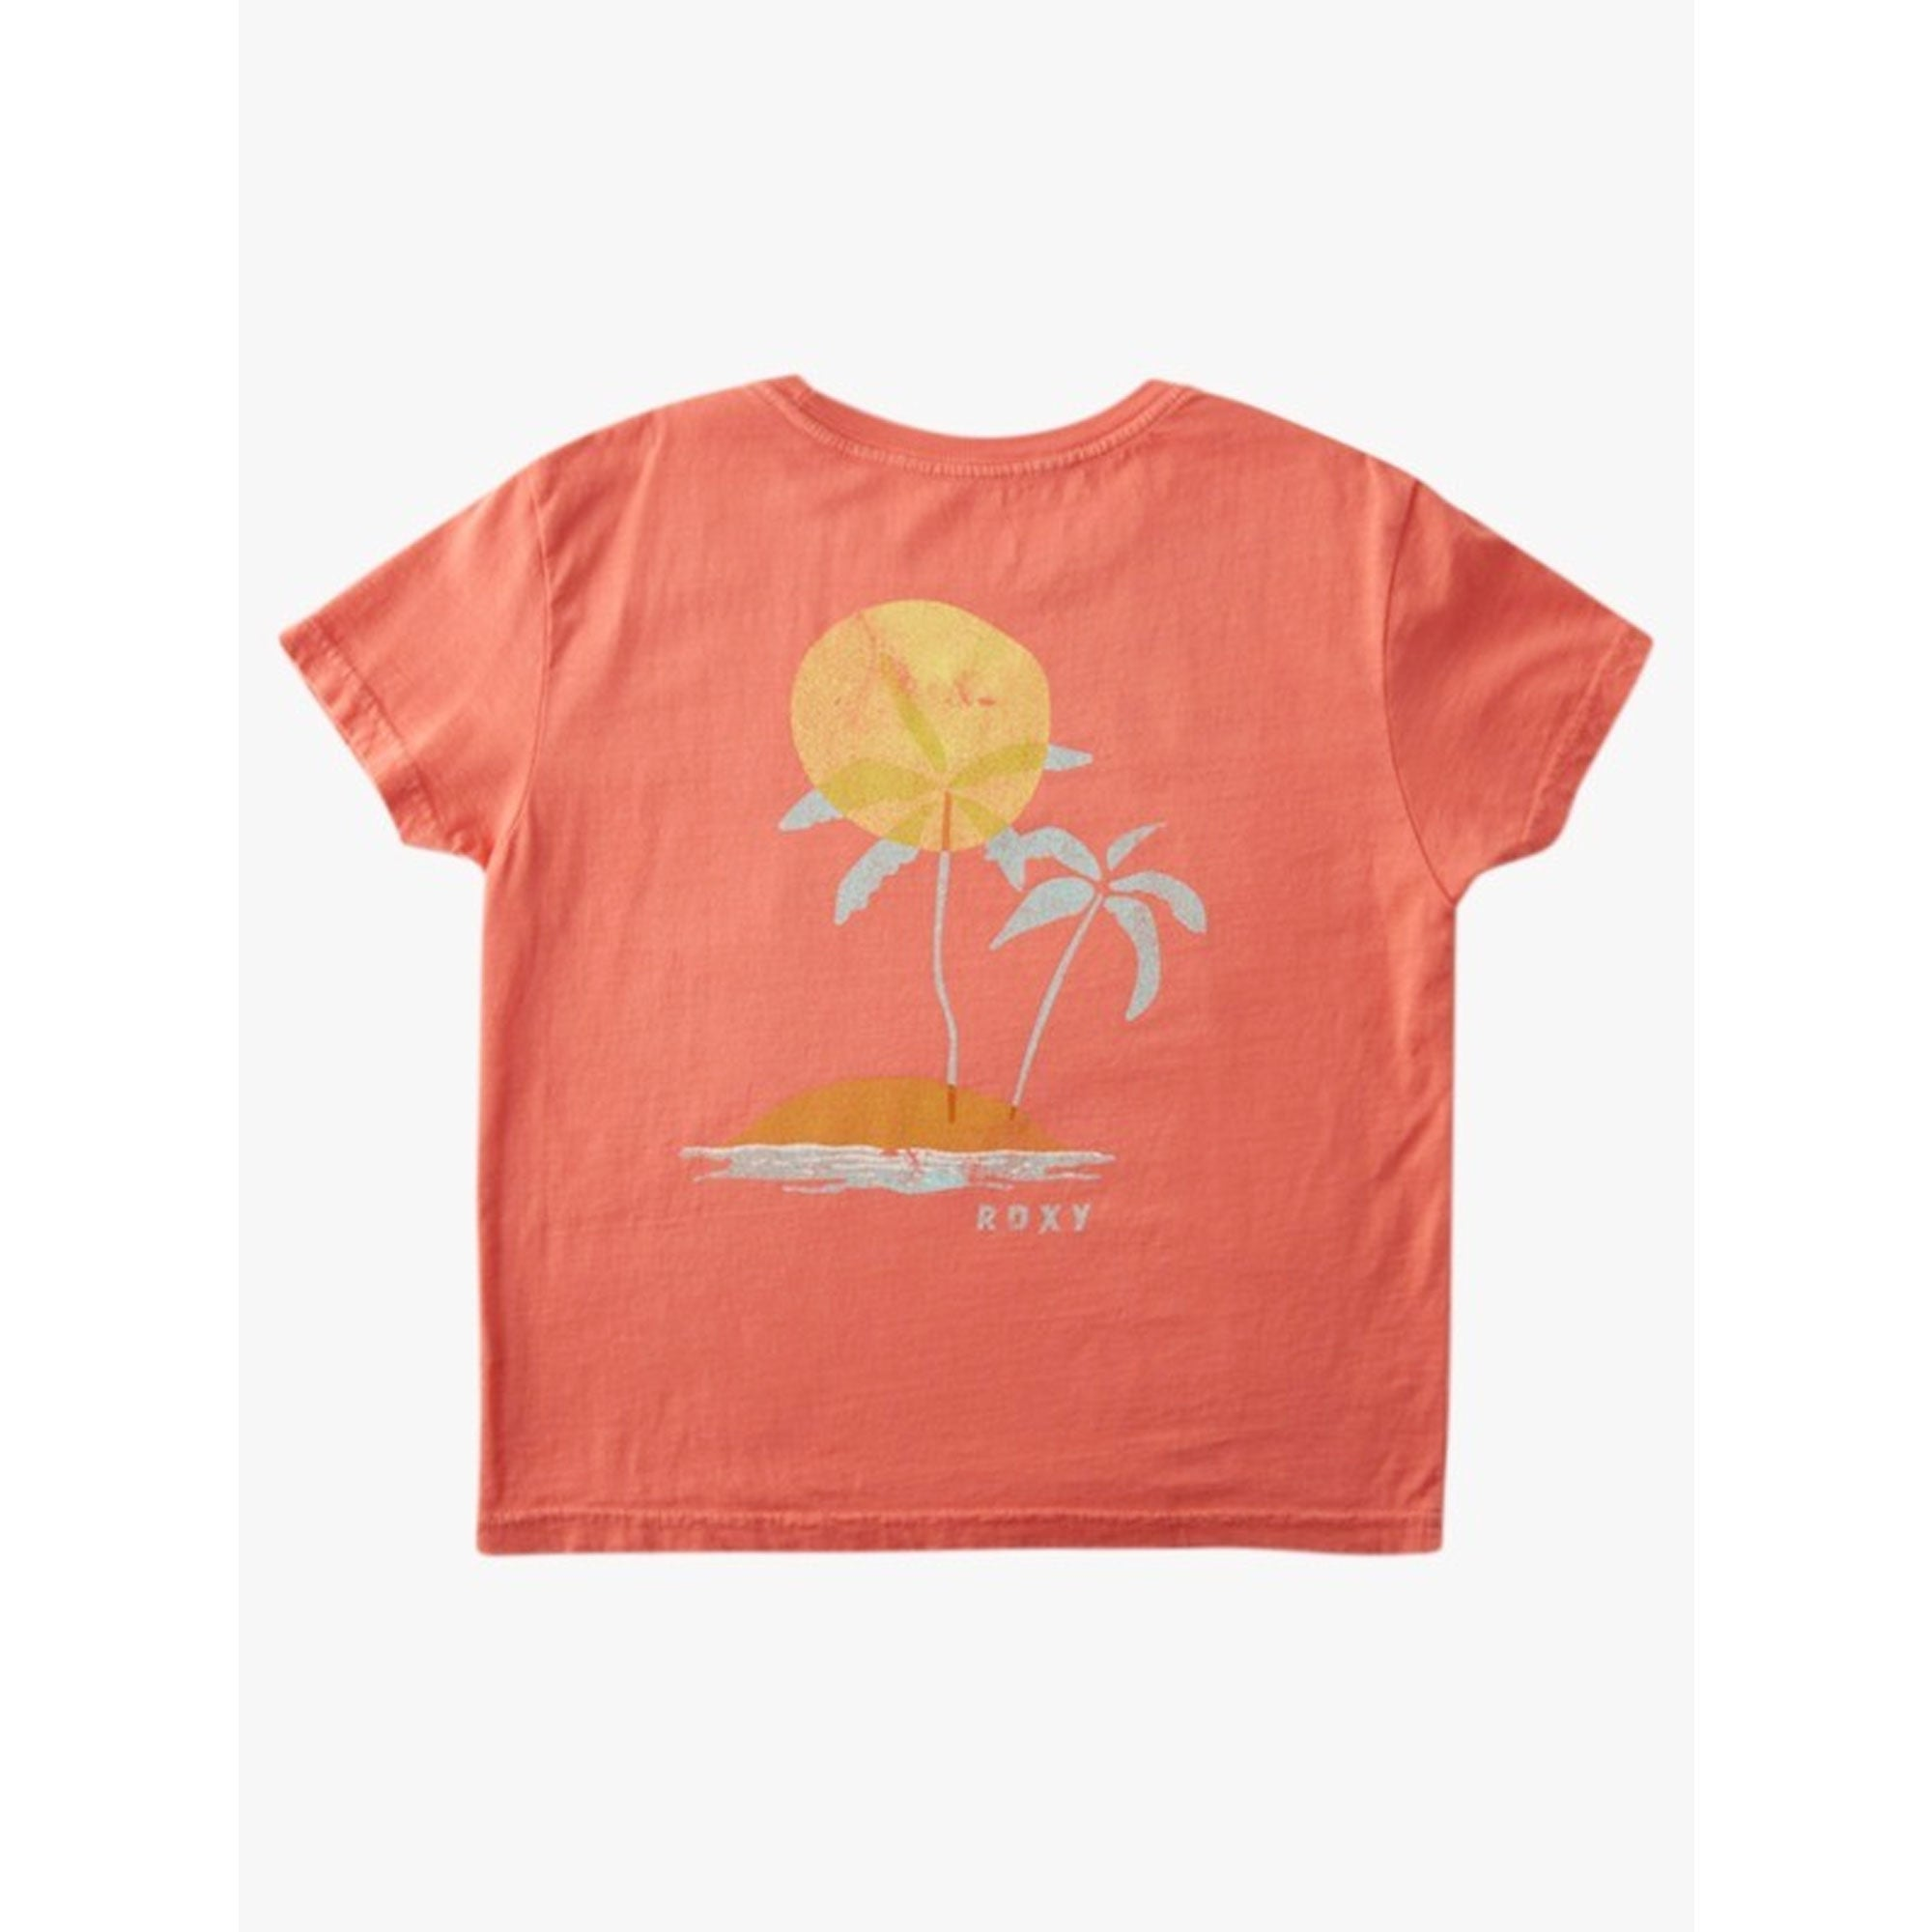 Roxy Artsy Palms Youth Girl's T-Shirt